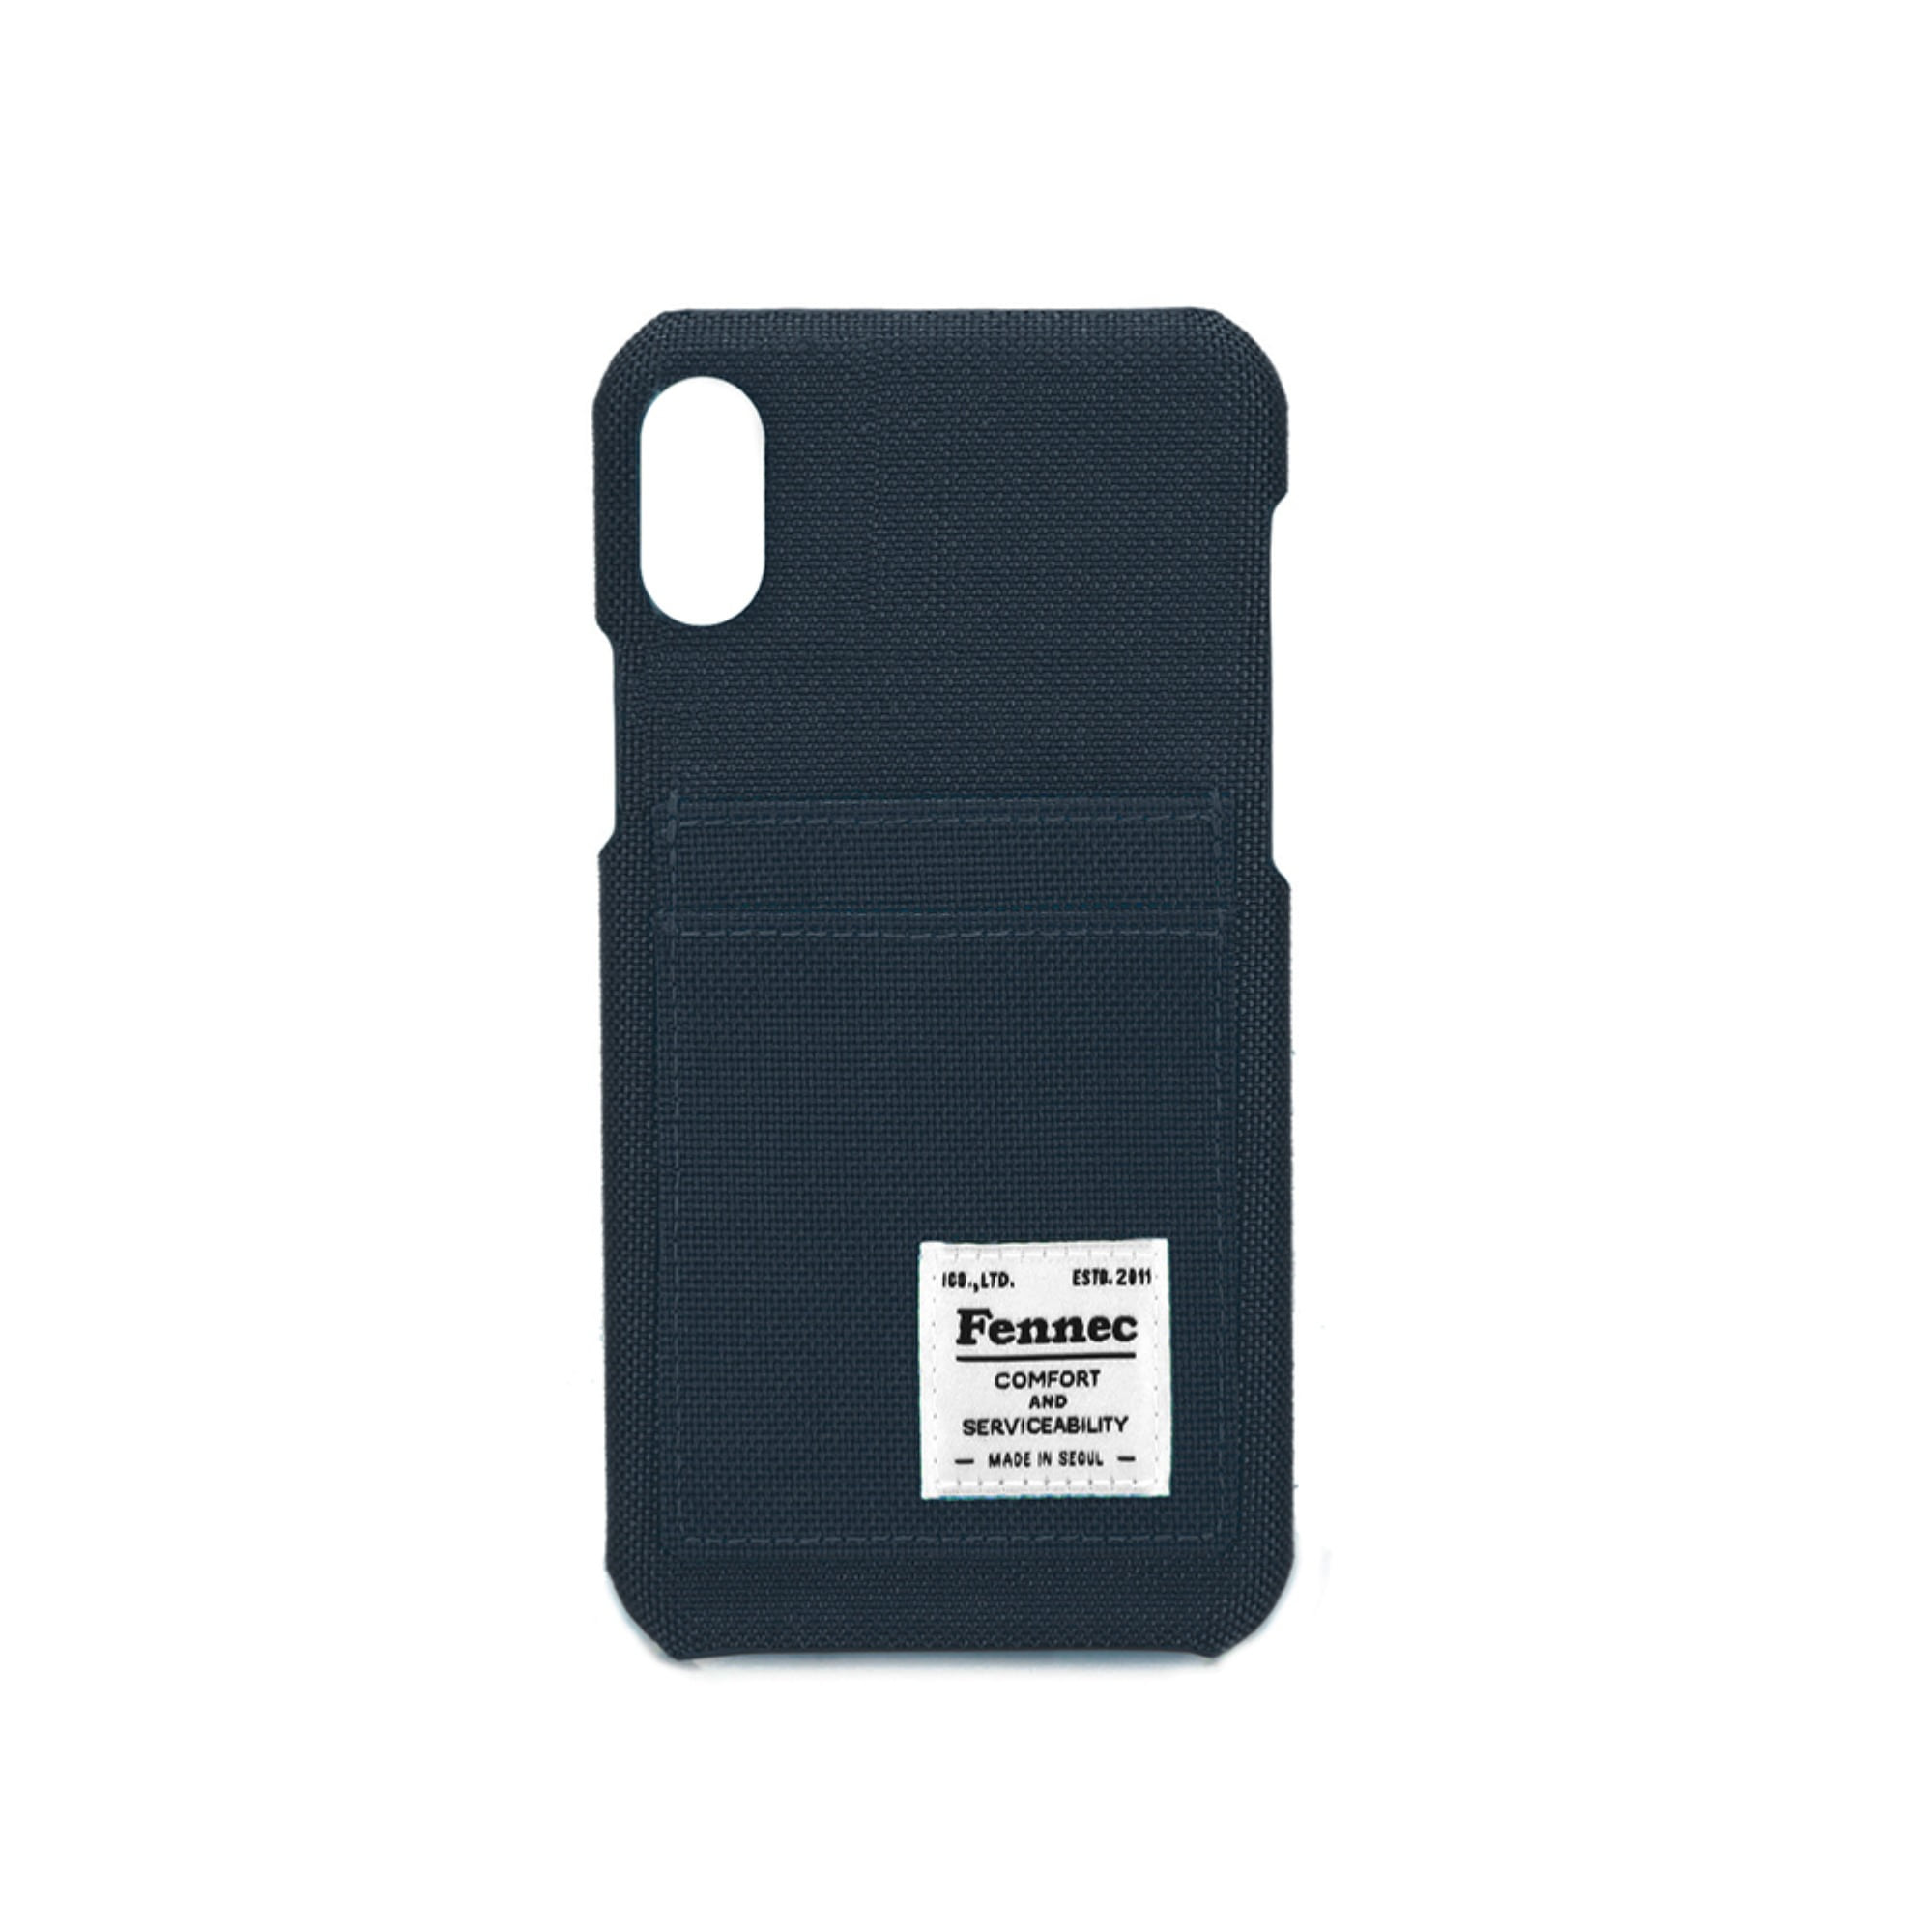 [DISCONTINUE] C&S iPHONE XR CARD CASE - NAVY